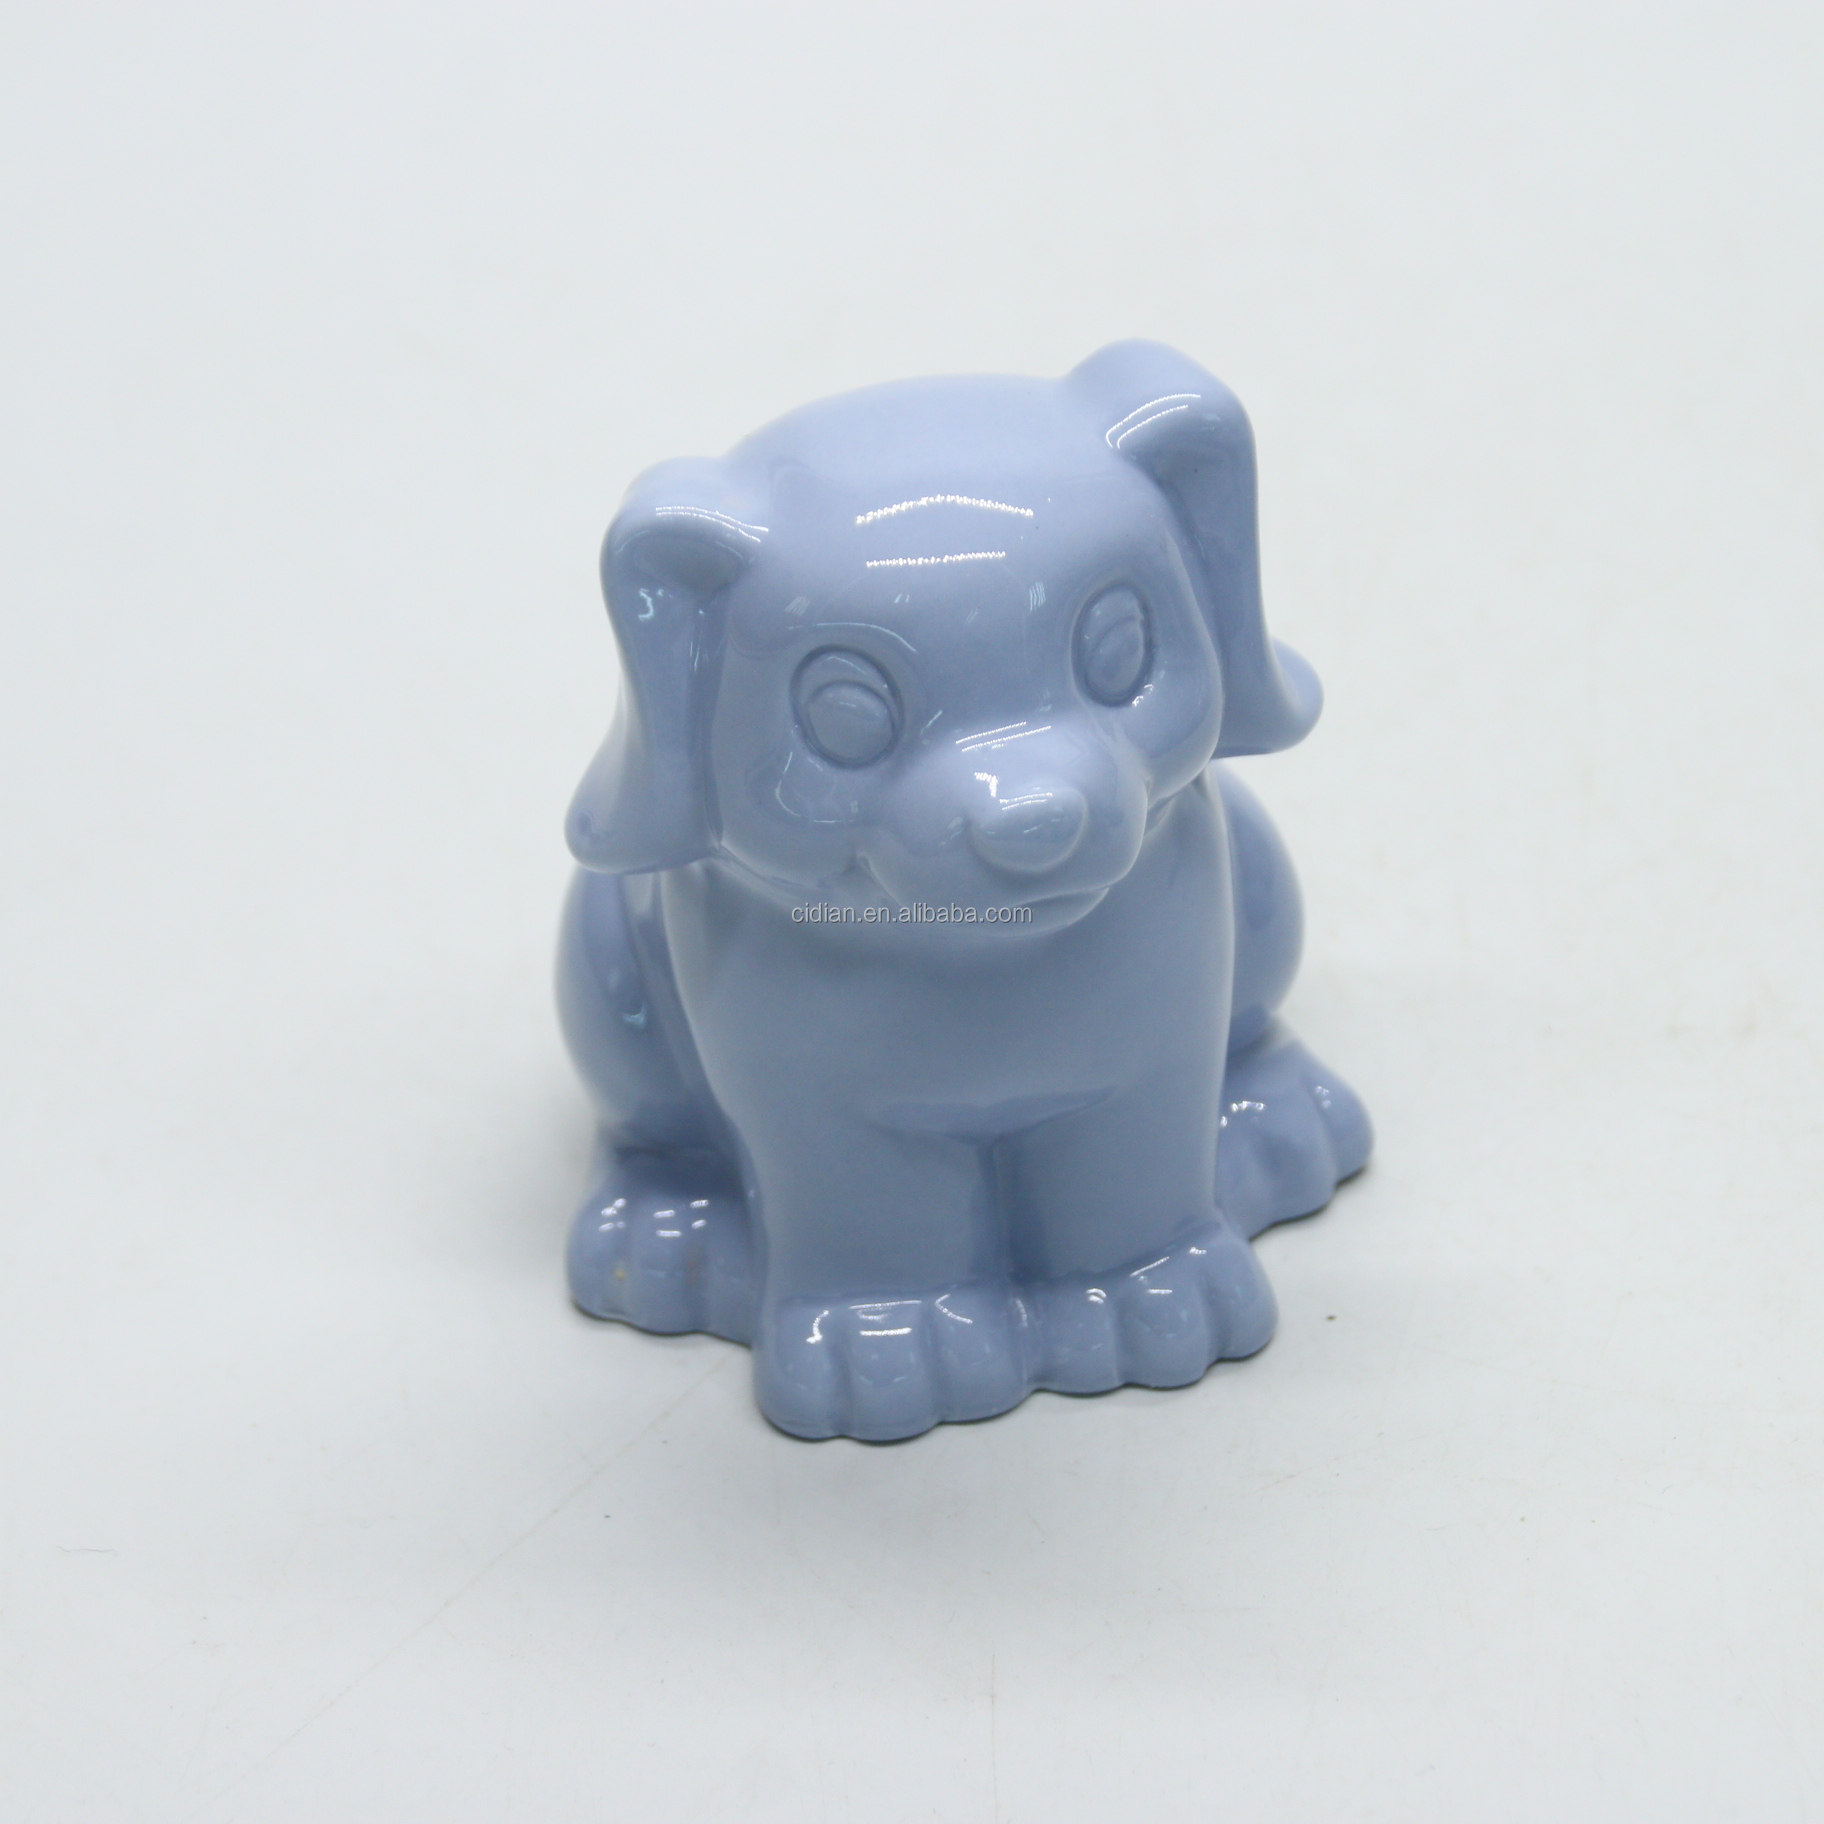 Cute dog shape ceramic money coin box piggy bank